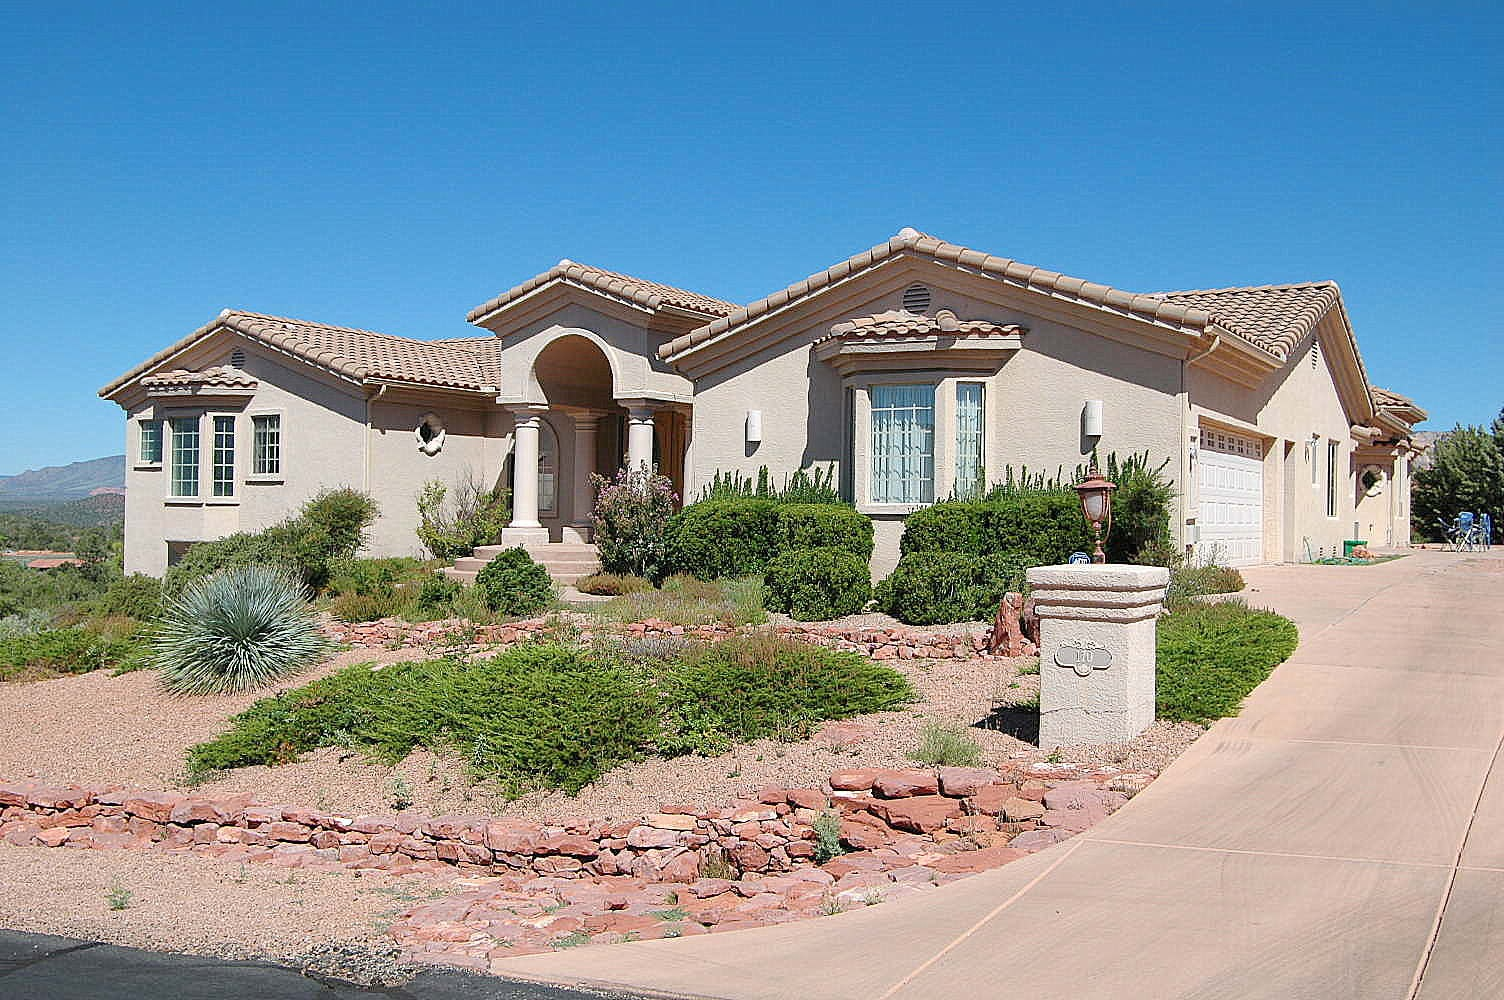 Homes In Kingman Az Real Estate Listings Kingman Arizona